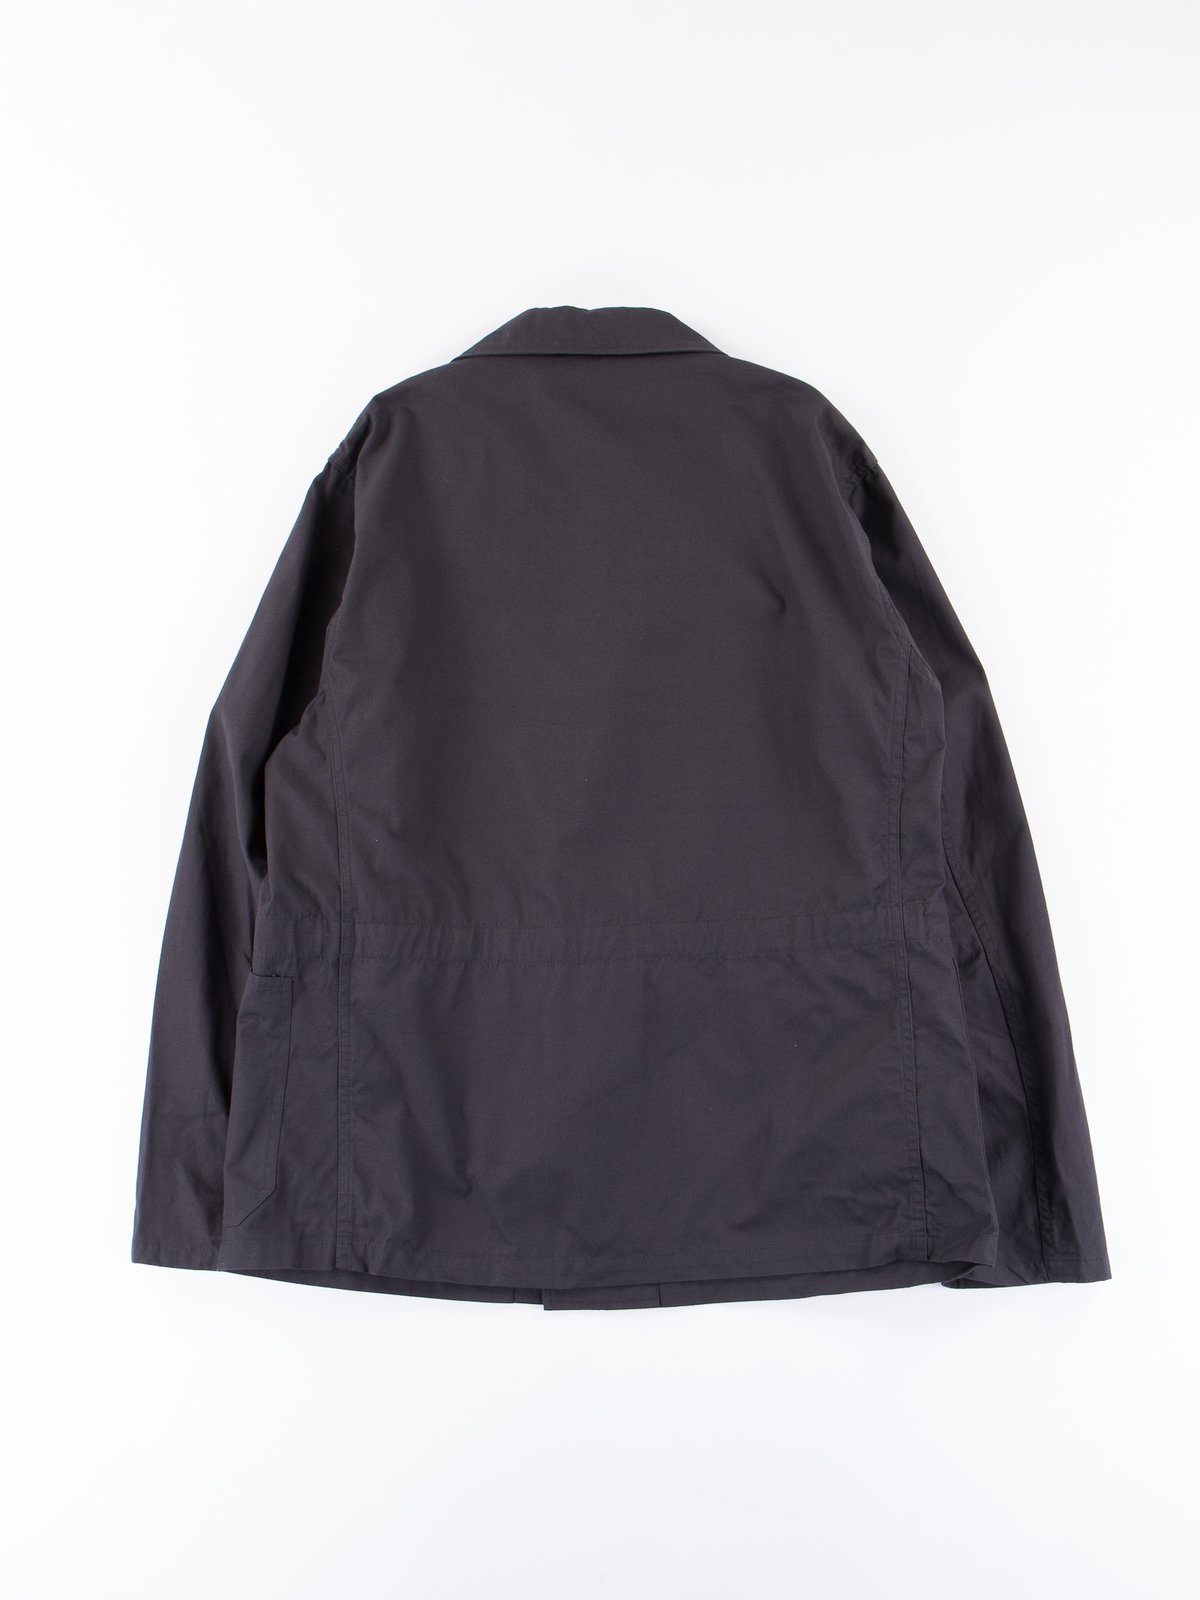 Fade Black Utility Coverall Jacket - Image 5